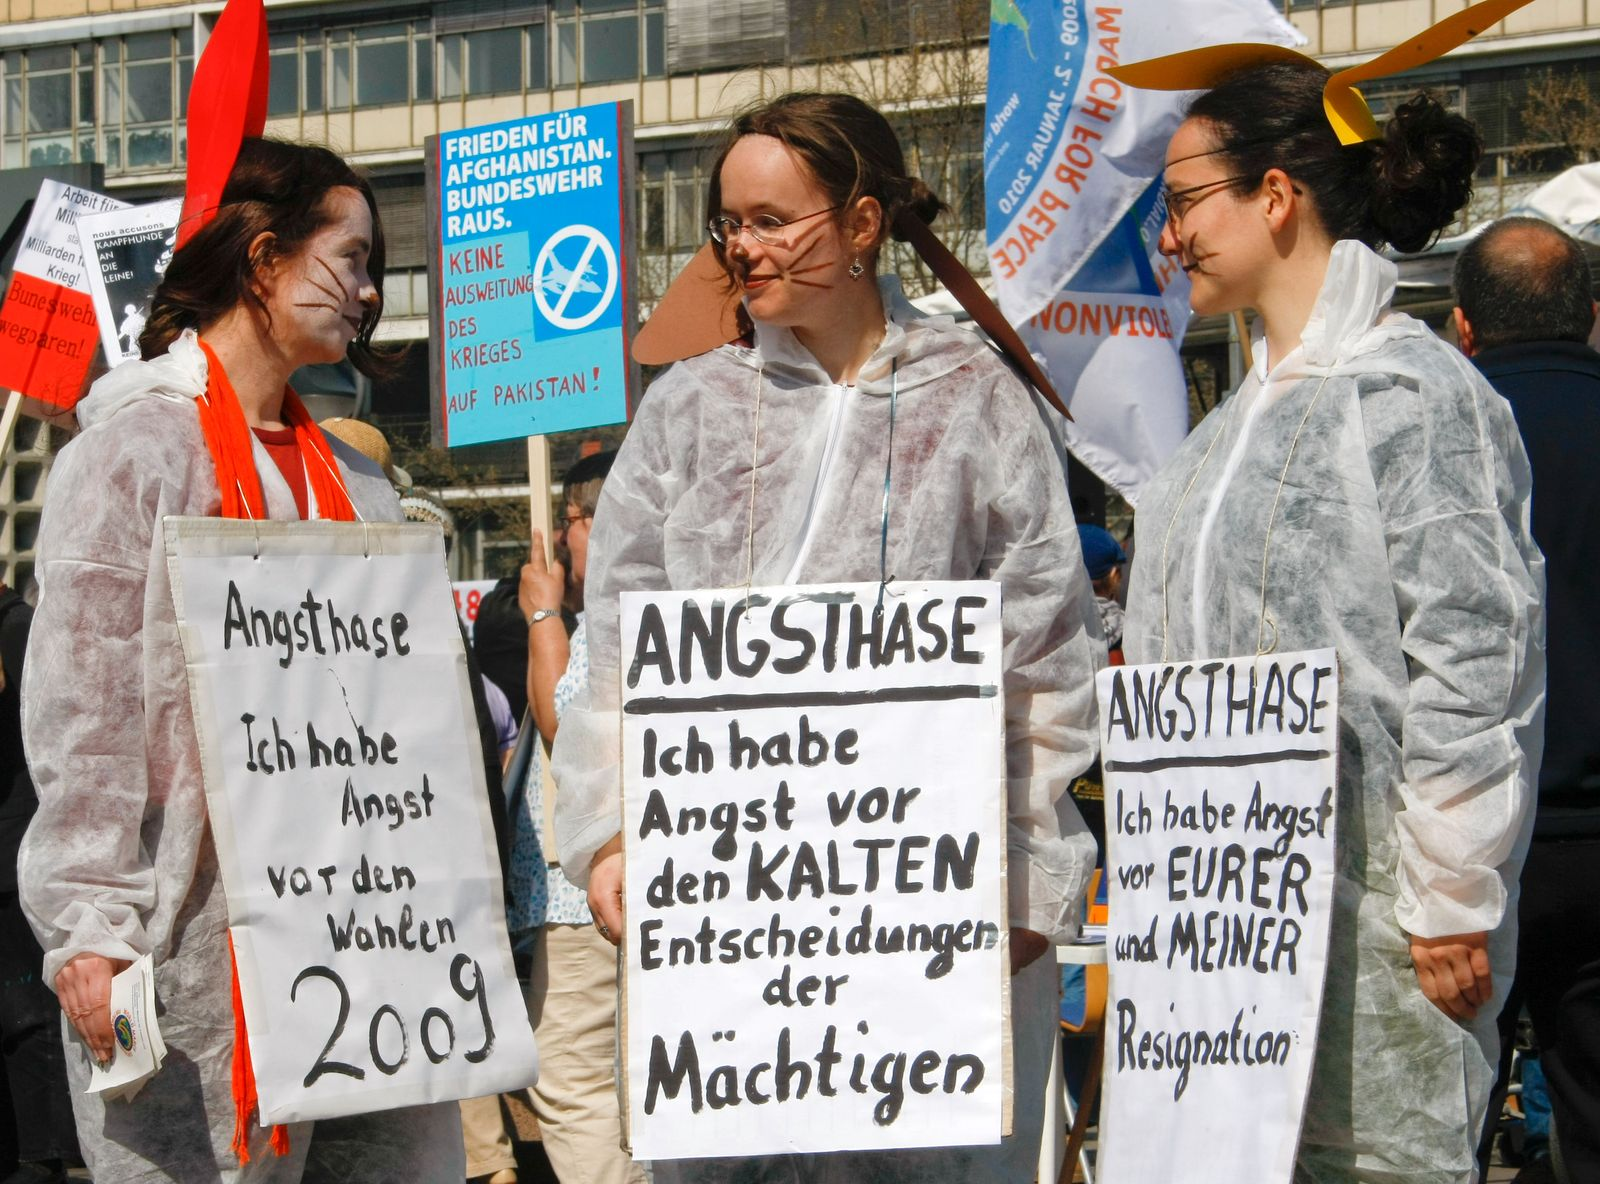 Protesters take part in Easter march demonstration in Berlin